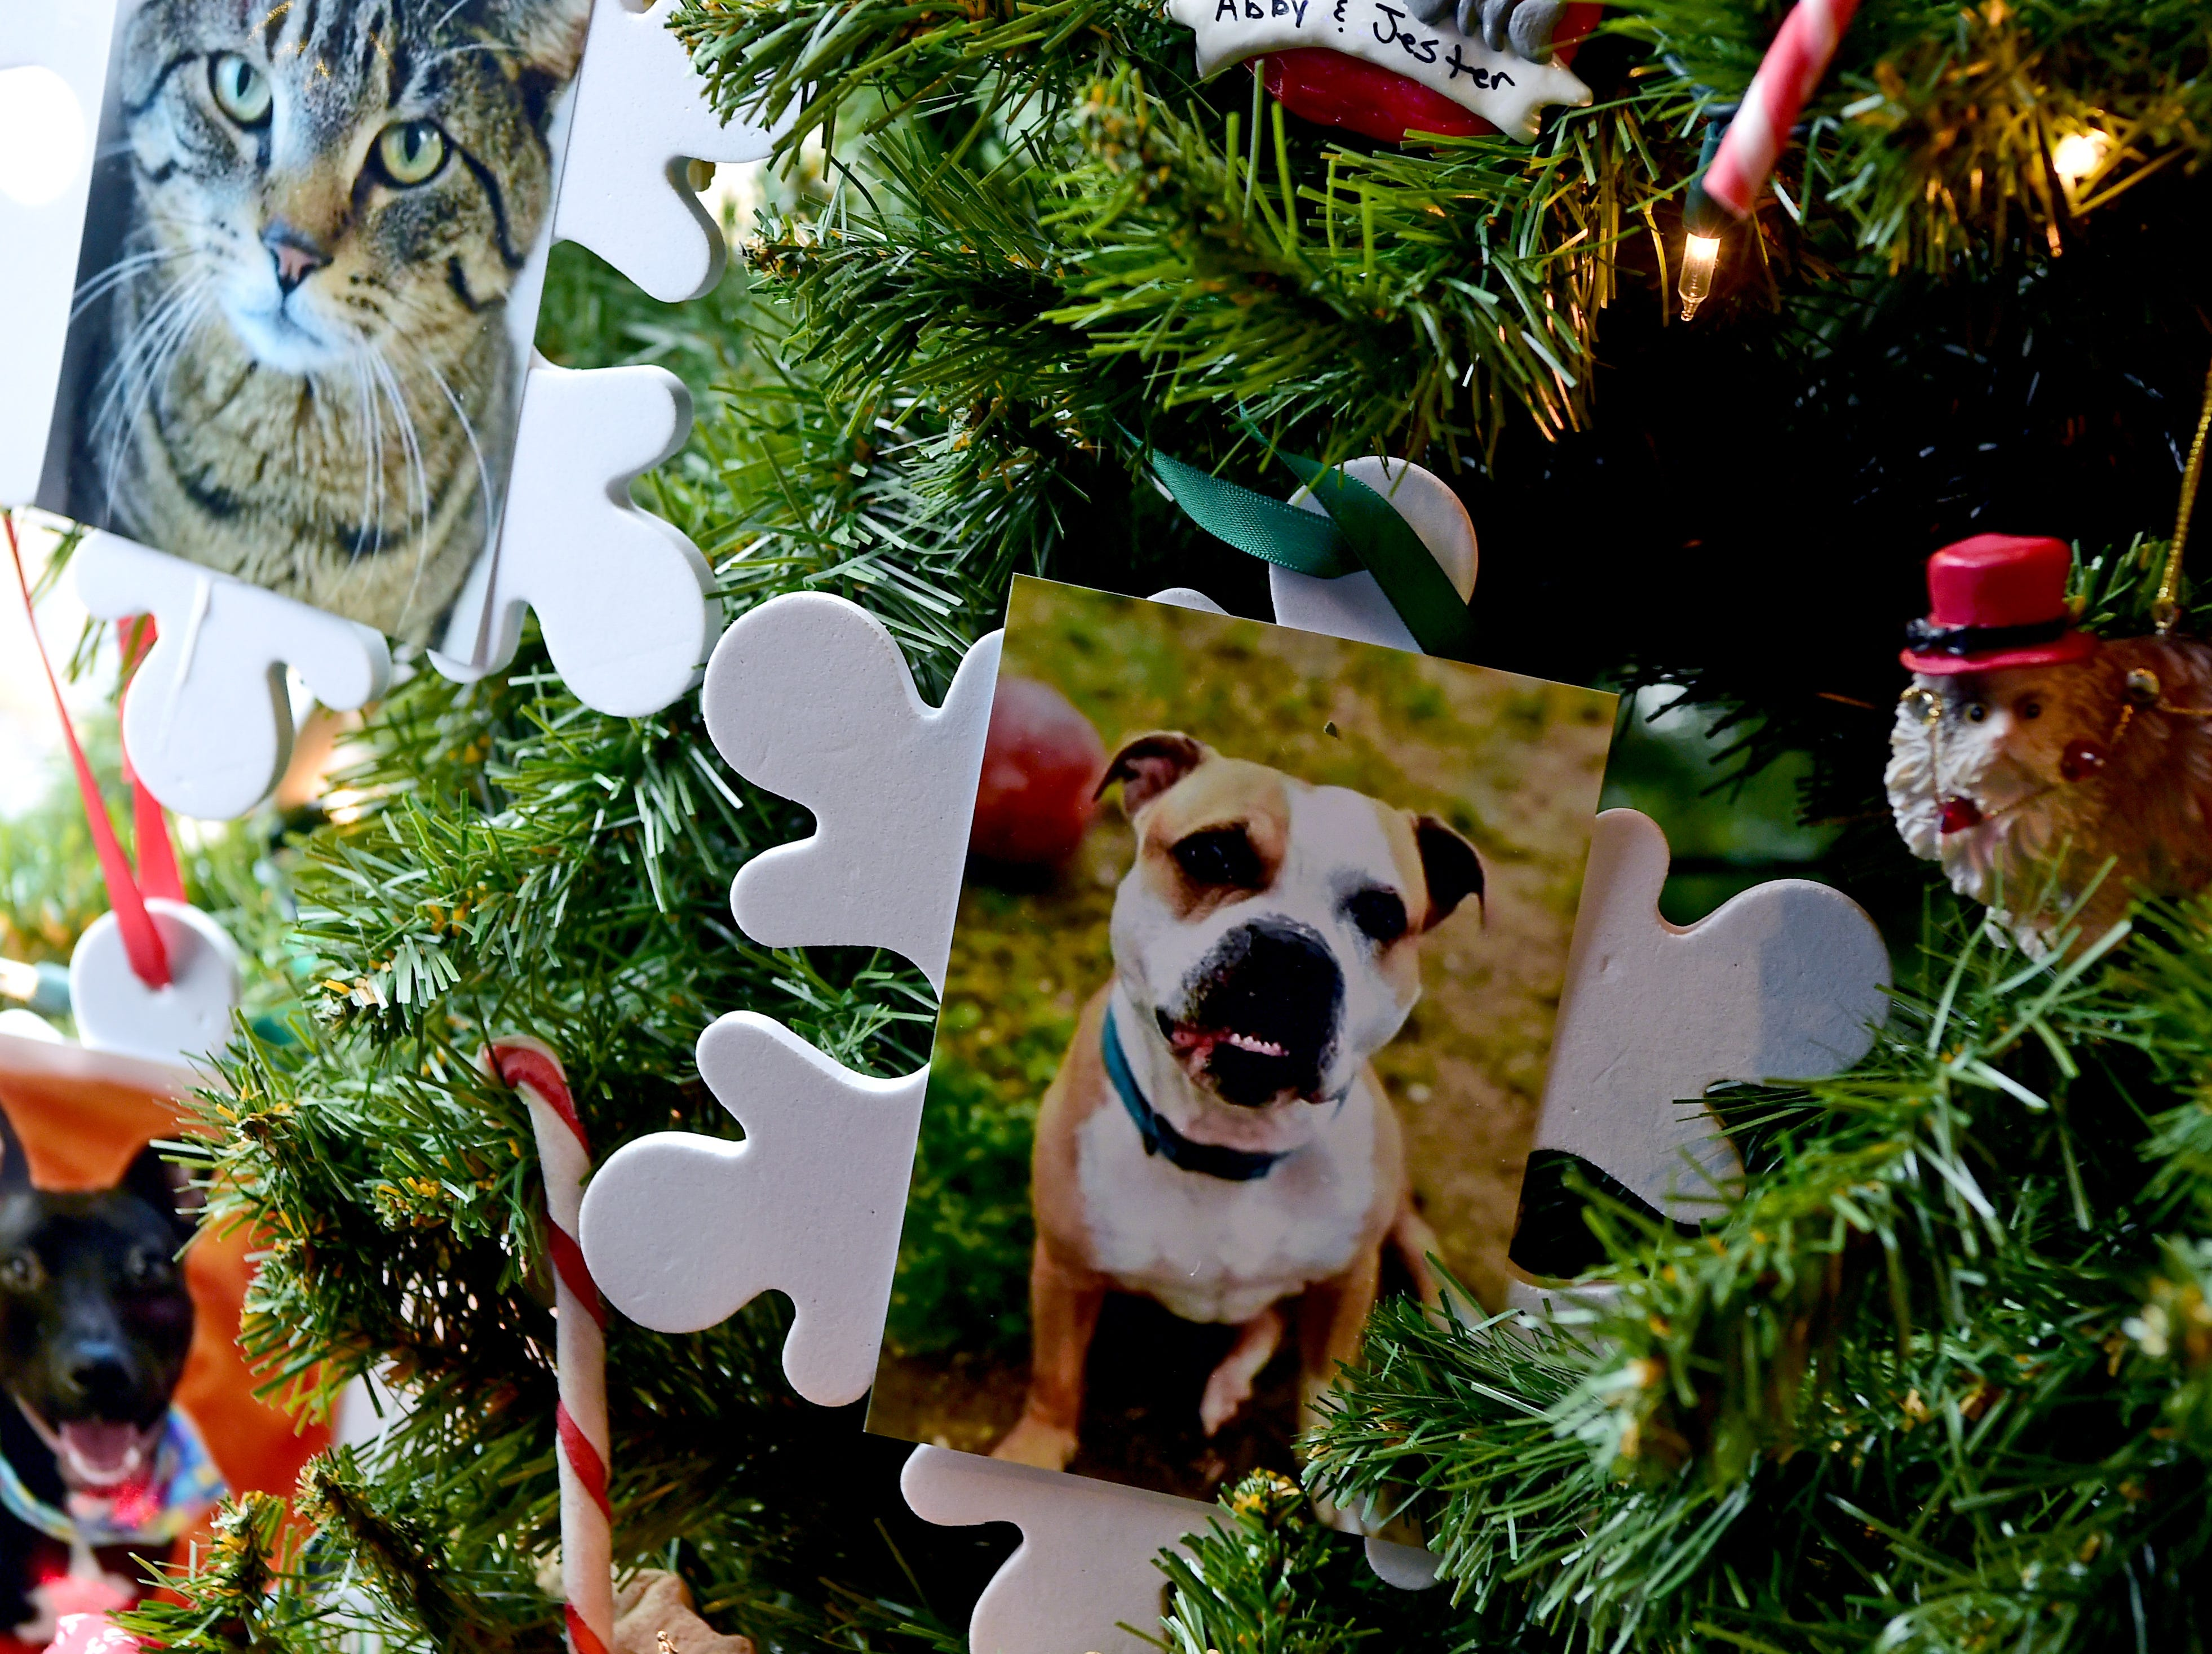 Tree decorated by Broome County Humane Society. Roberson Museum and Science Center's annual Home for the Holidays event opens on November 14 and continues through January 6. The event features hundreds of elaborately decorated holiday trees and displays. November 12, 2018.